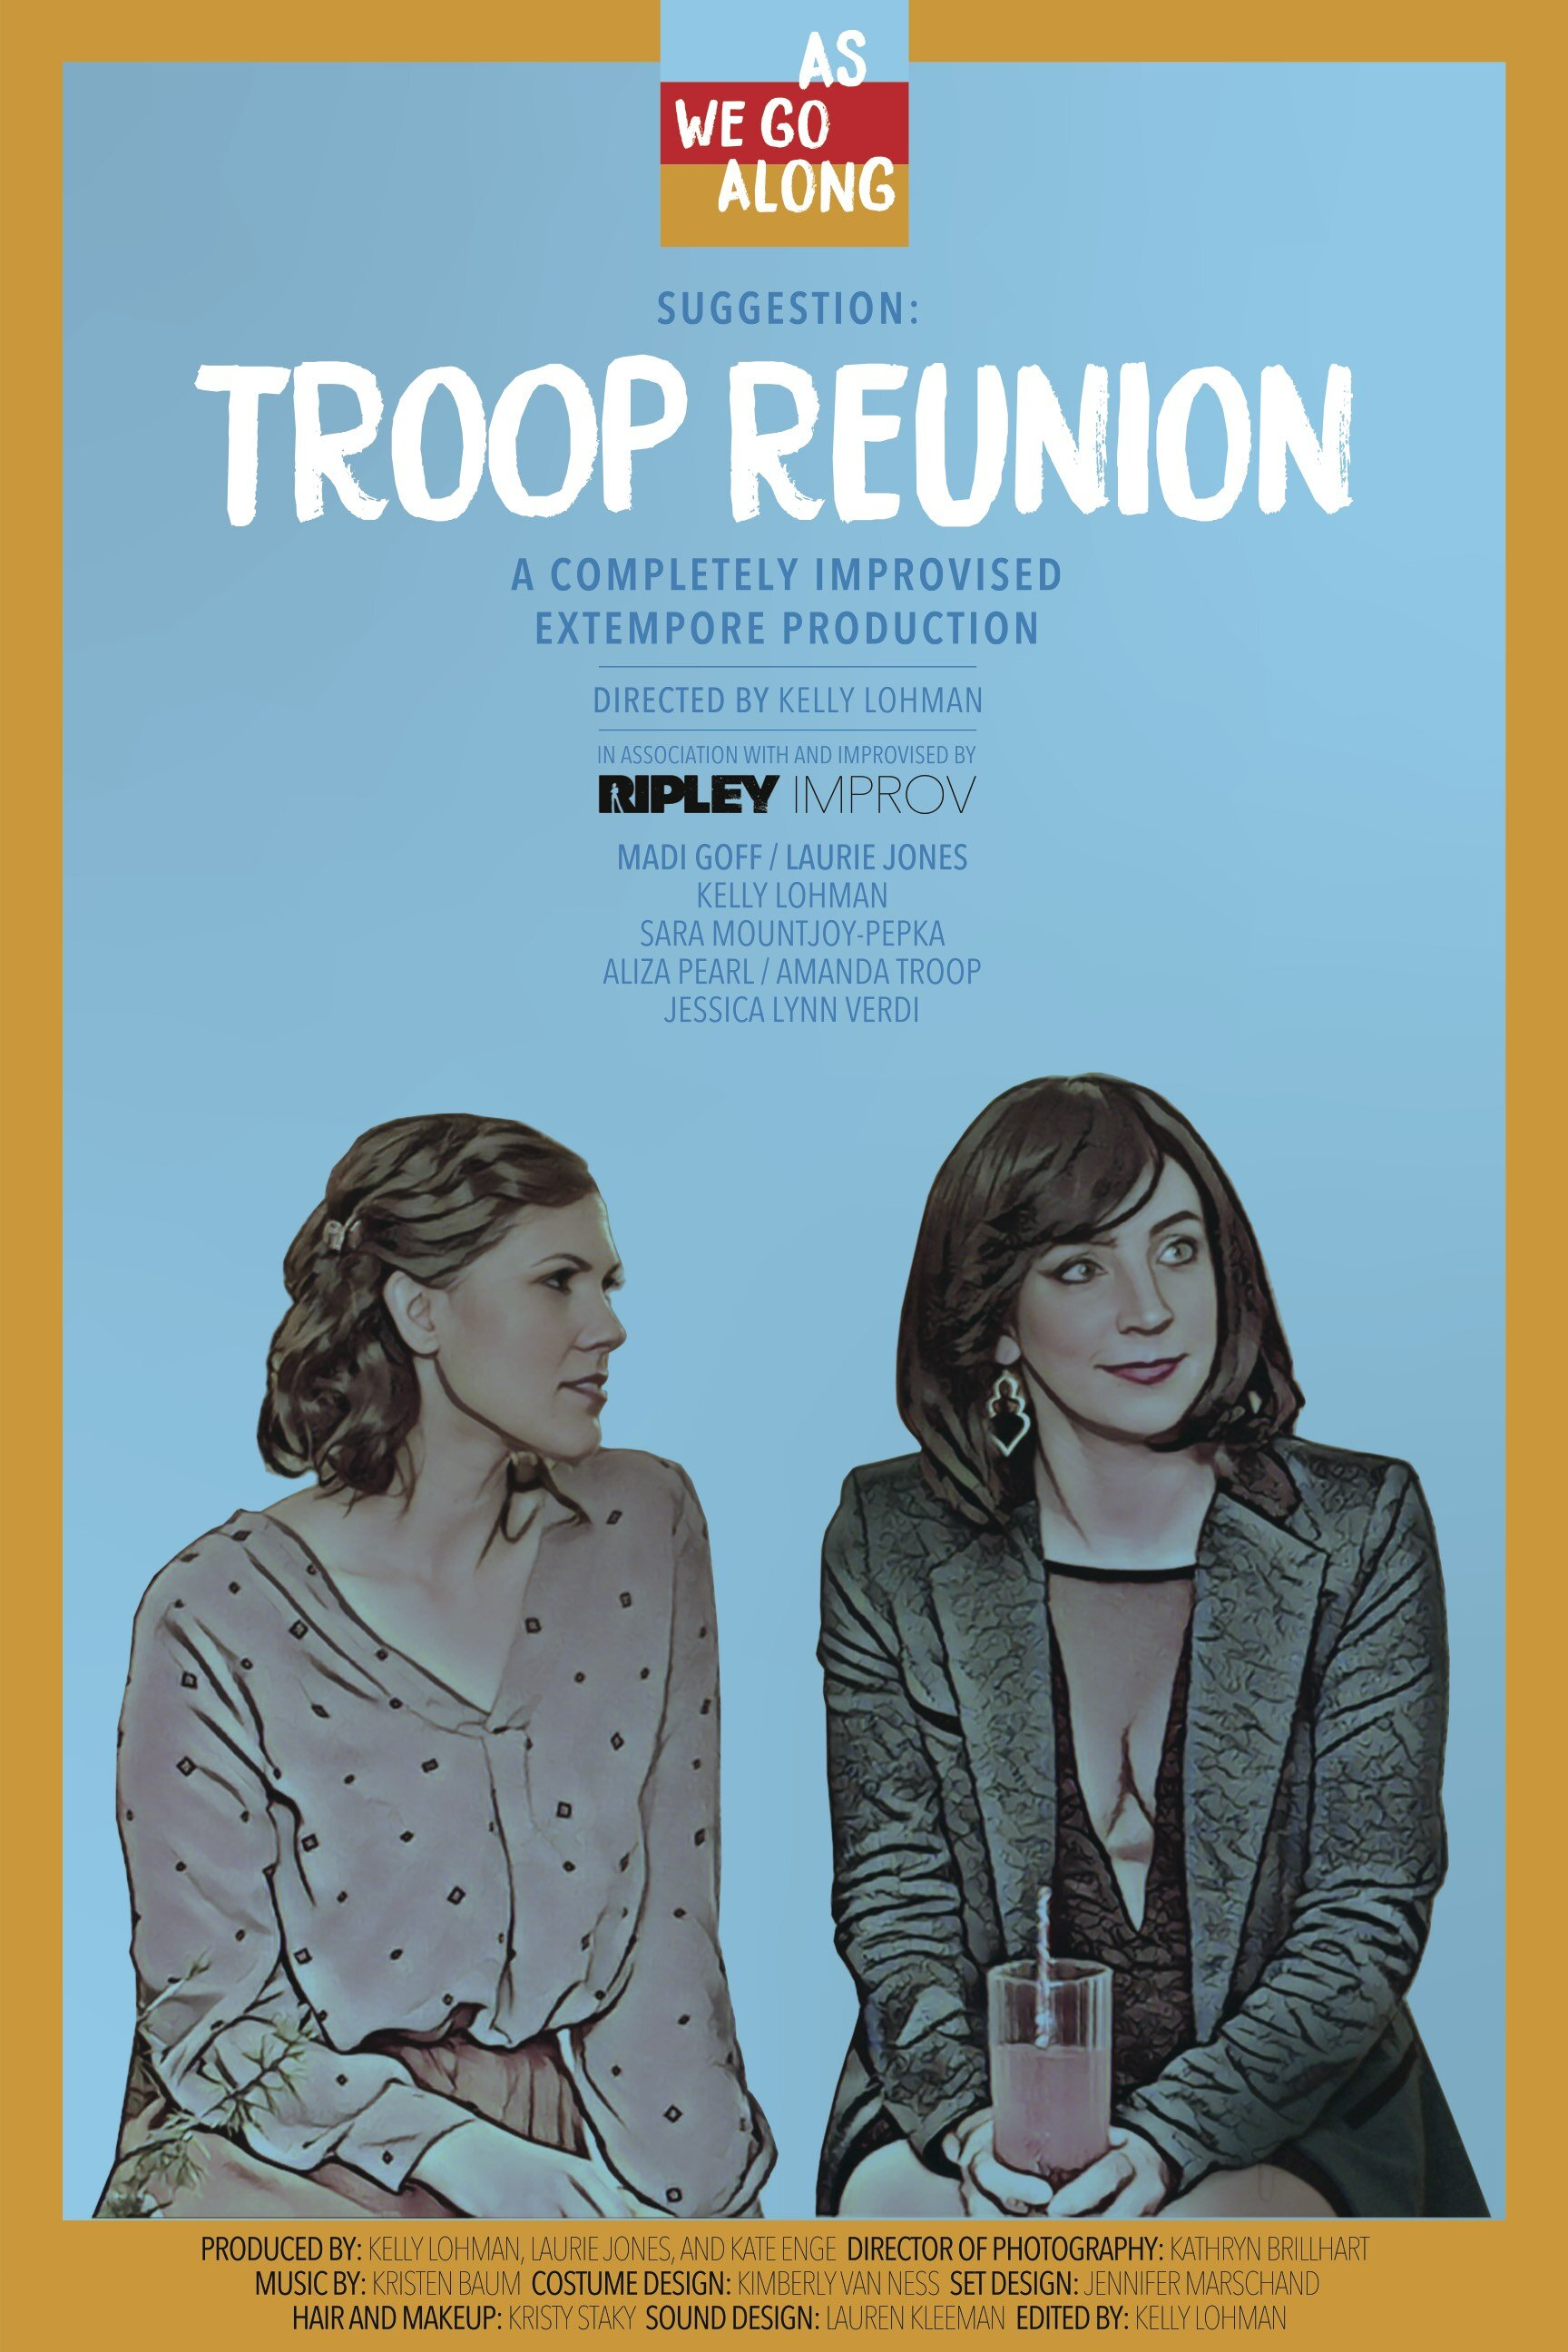 Troop Reunion: After 20 years, Amelia throws a reunion party for her group of girlhood scouts. But Amelia has big plans, and an even bigger question for one of the troop members. So big that she decides to hire a filmmaker to capture the momentous occasion. But the troop reunion begins to fall apart as the six women discover how wildly different they've become, questioning whether their friendships can survive radical change -- all in front of a film crew.